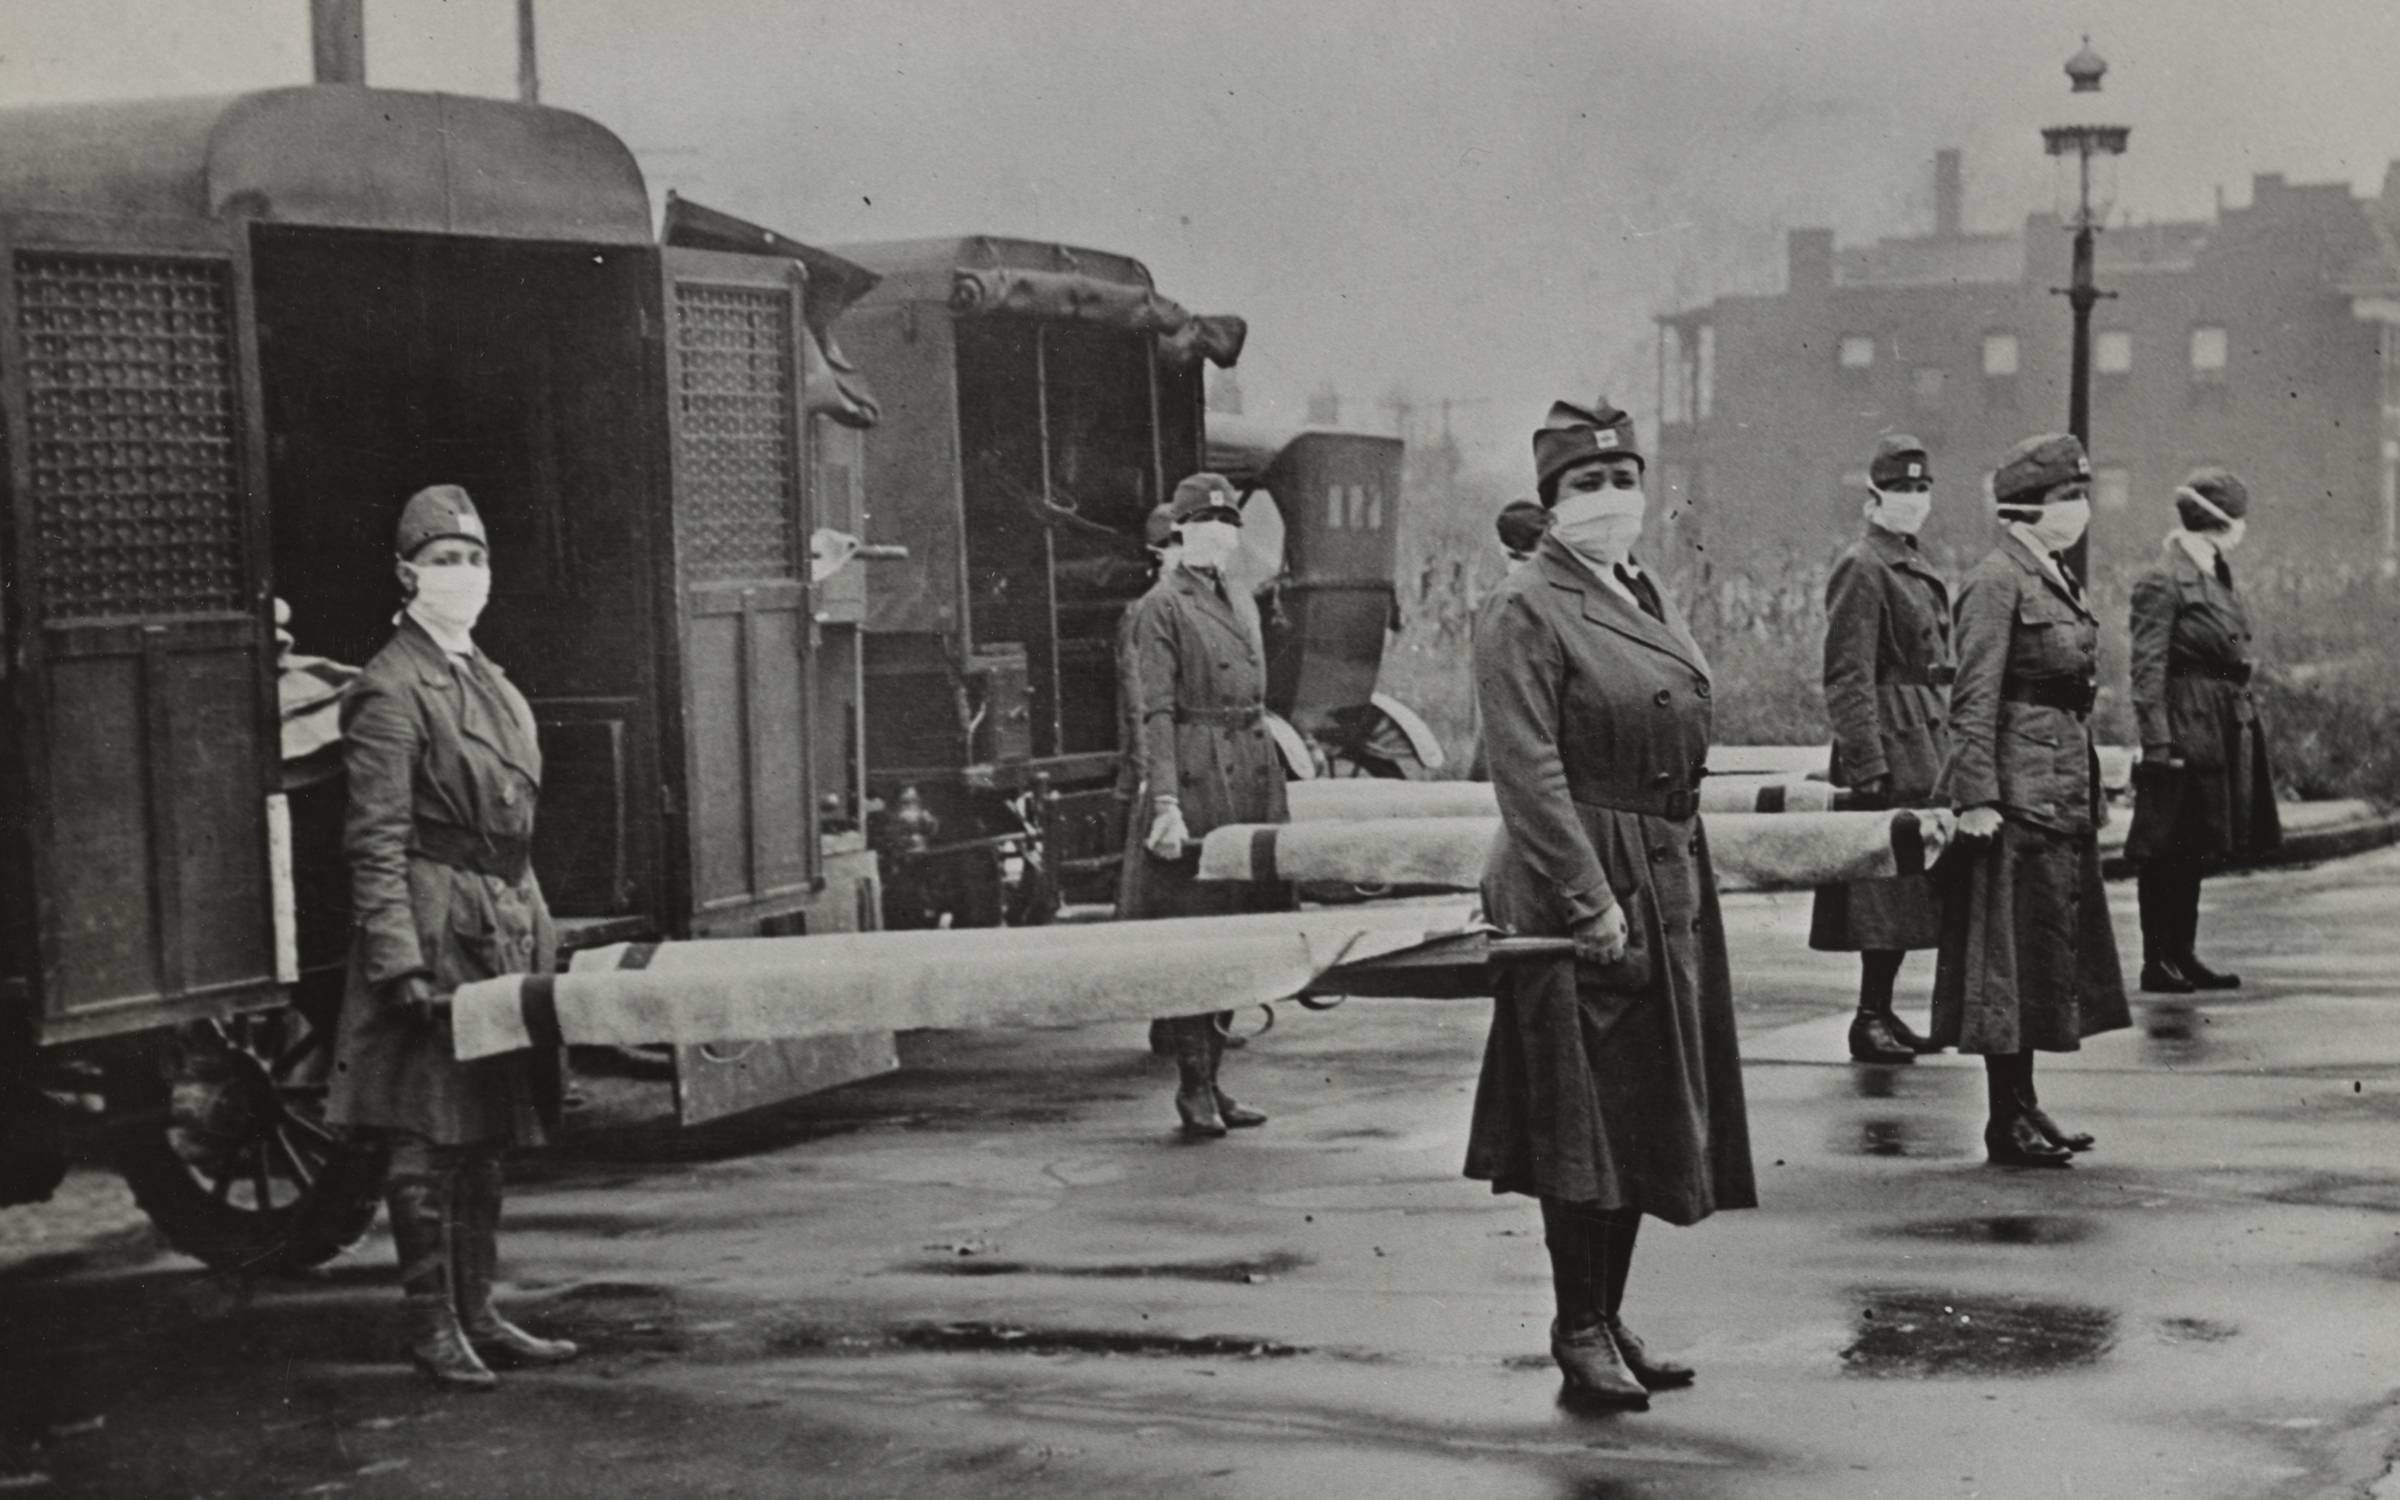 St. Louis Red Cross Motor Corps on duty during the American Influenza epidemic. 1918. Credit: Universal History Archive/Universal Images Group via Getty Images